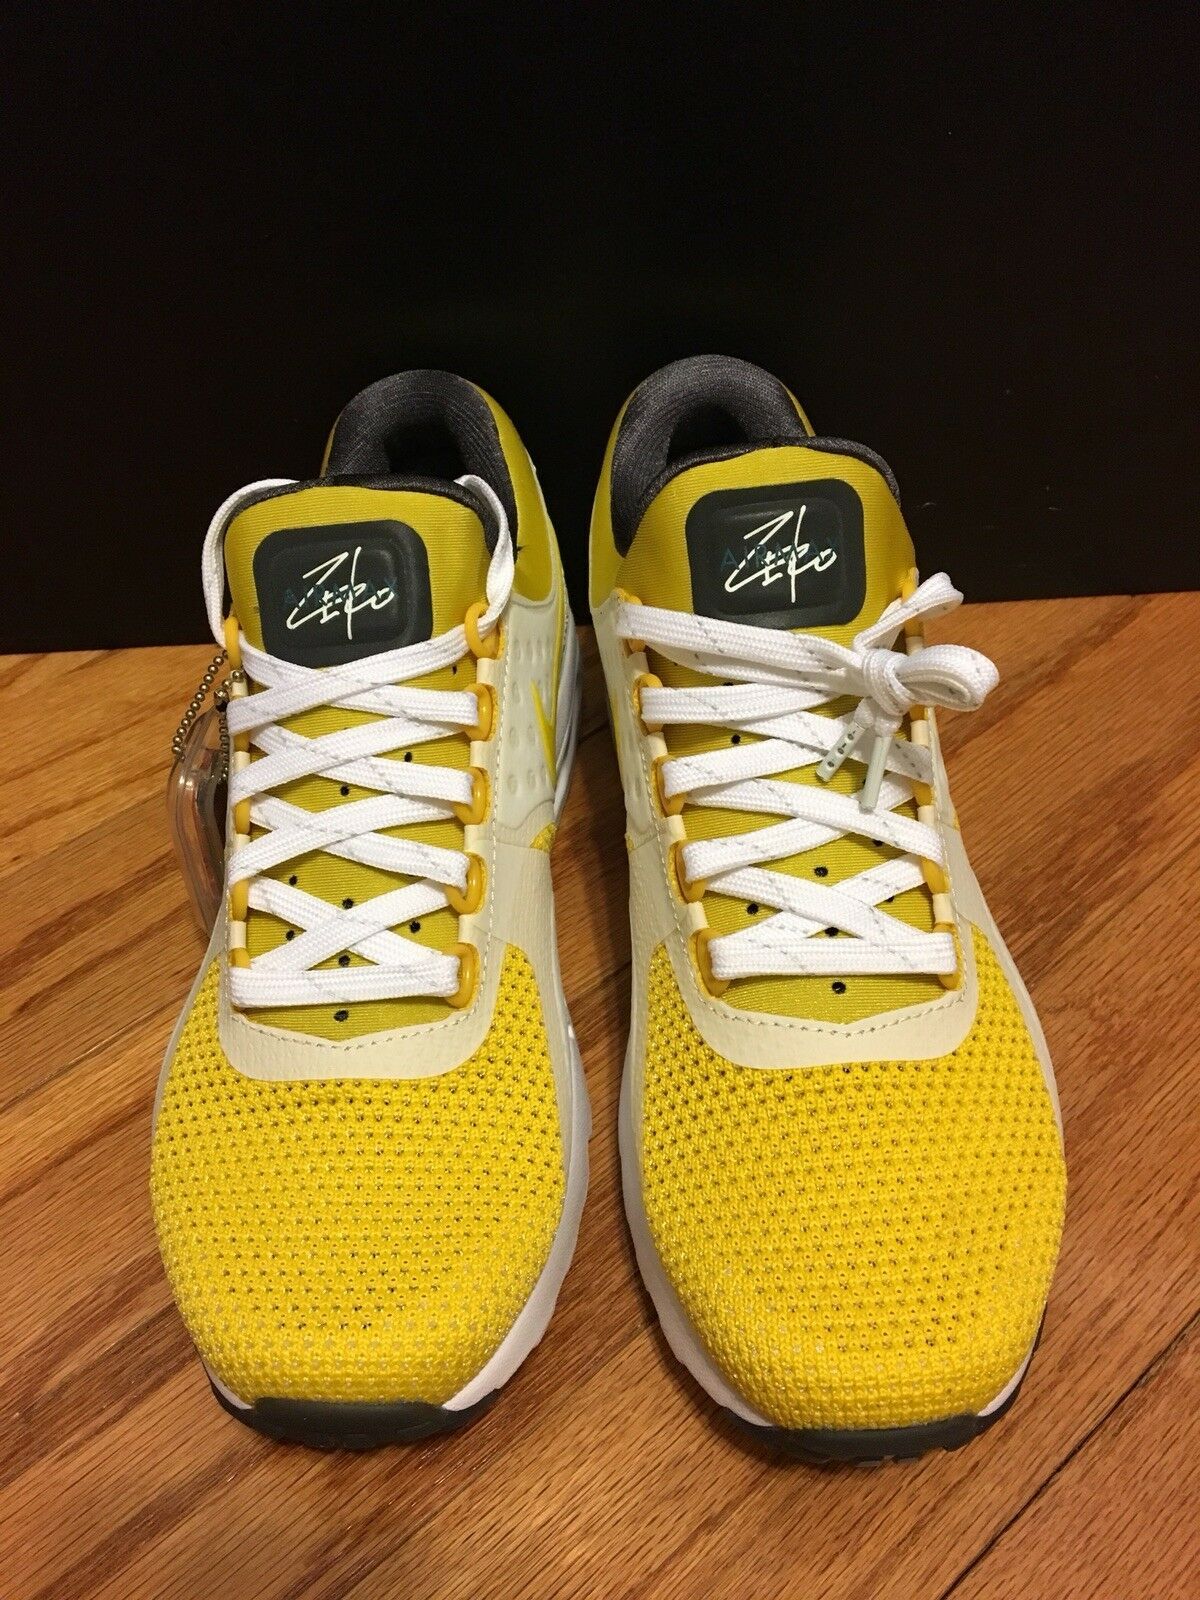 Nike Air Max Zero QS Sulfur Yellow 789695-100 SIZE 8 Tinker Hatfield Sketch